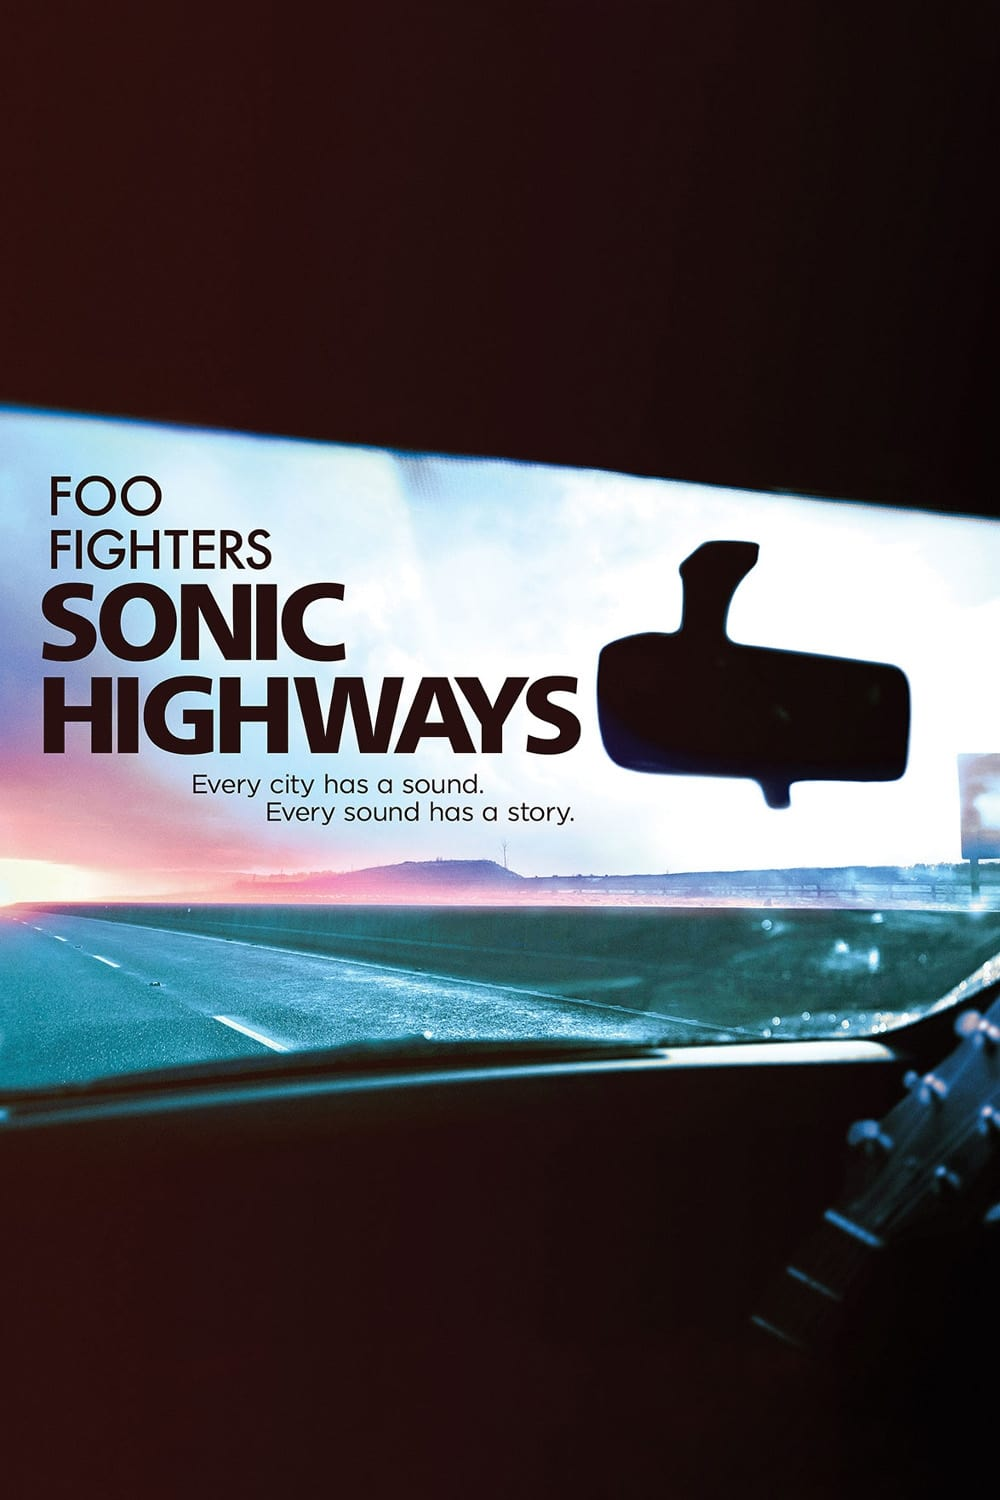 Foo Fighters Sonic Highways (2014)